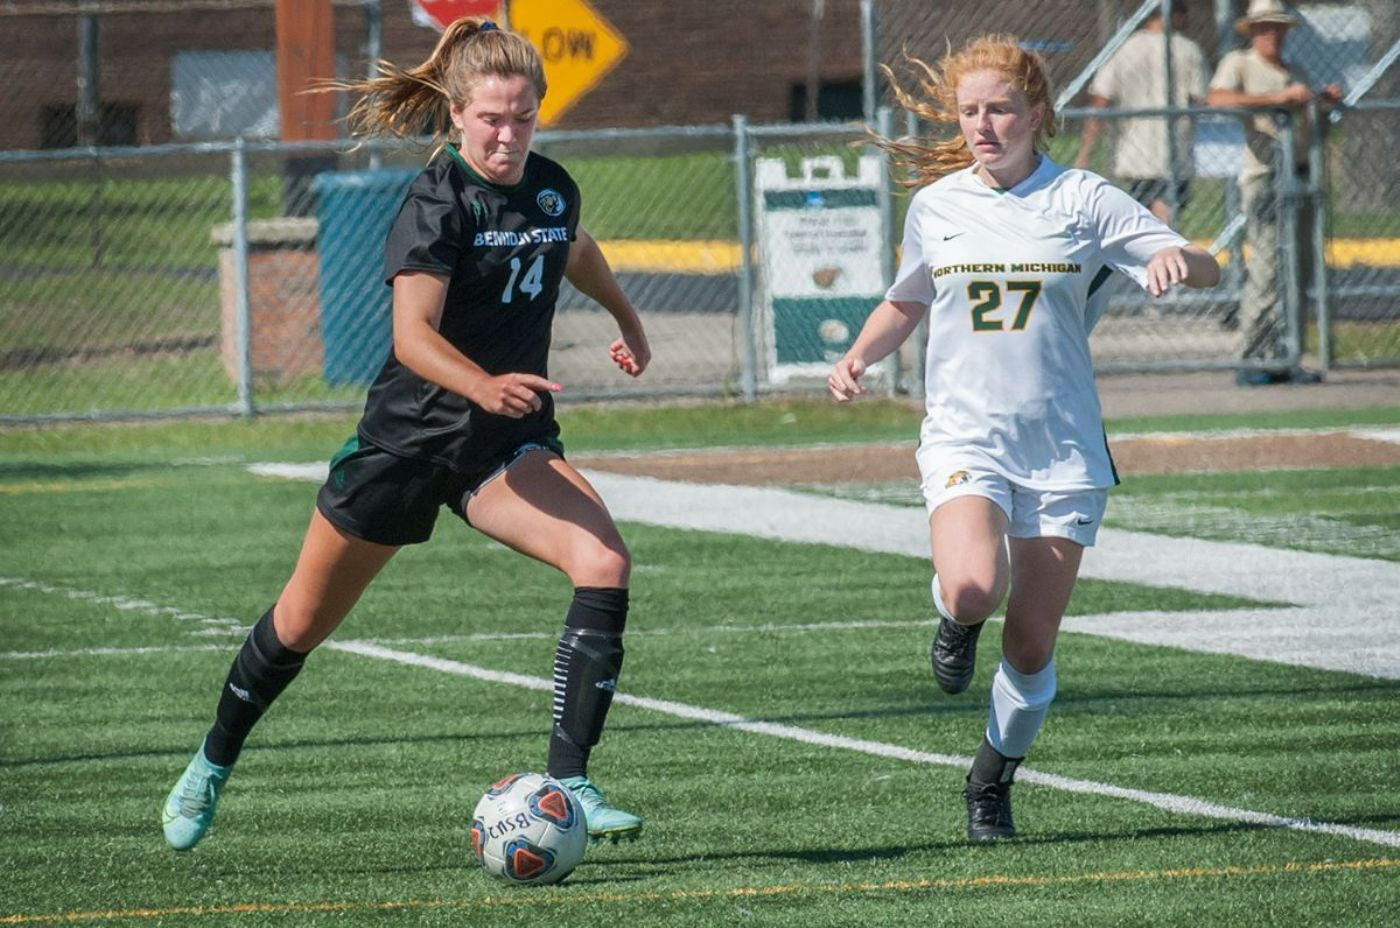 Final-moment heroics push Bemidji State past Northern State in NSIC opener